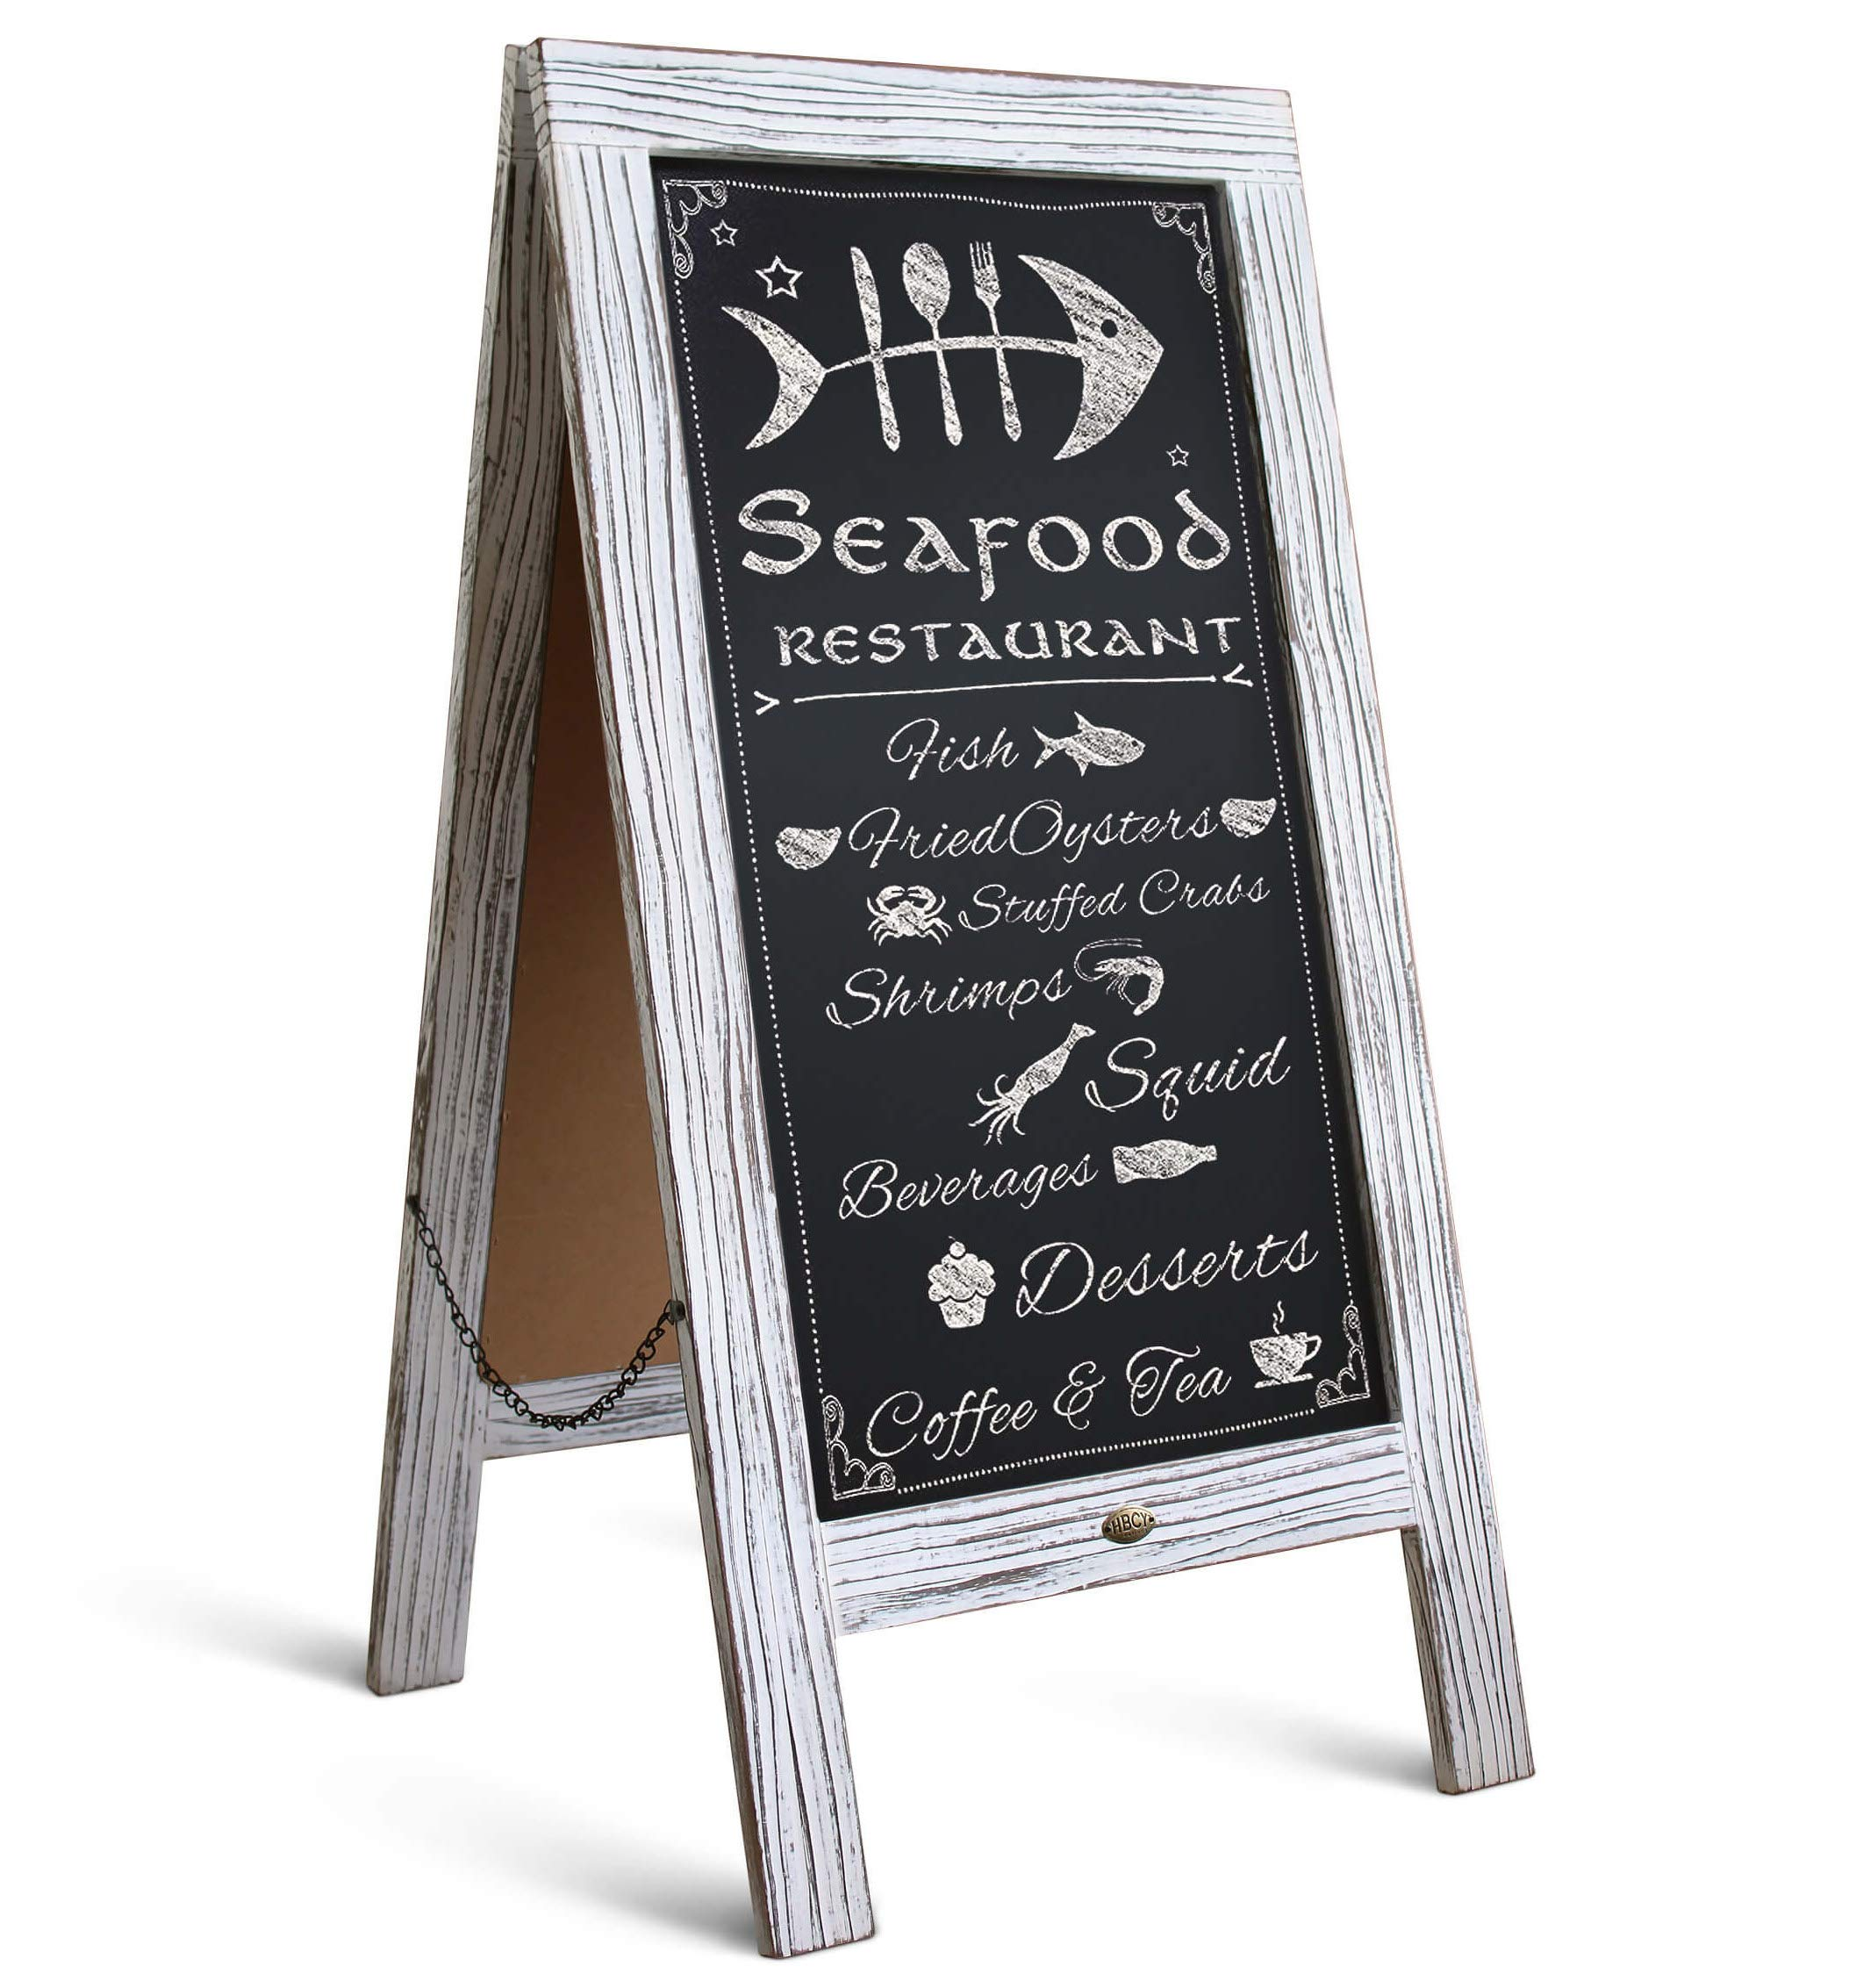 Rustic Vintage Wooden Whitewashed Magnetic A-Frame Chalkboard/Sidewalk Chalkboard Sign/Large 40'' x 20'' Sturdy Sandwich Board/A Frame Restaurant Message Board Display (Classic) by HBCY Creations